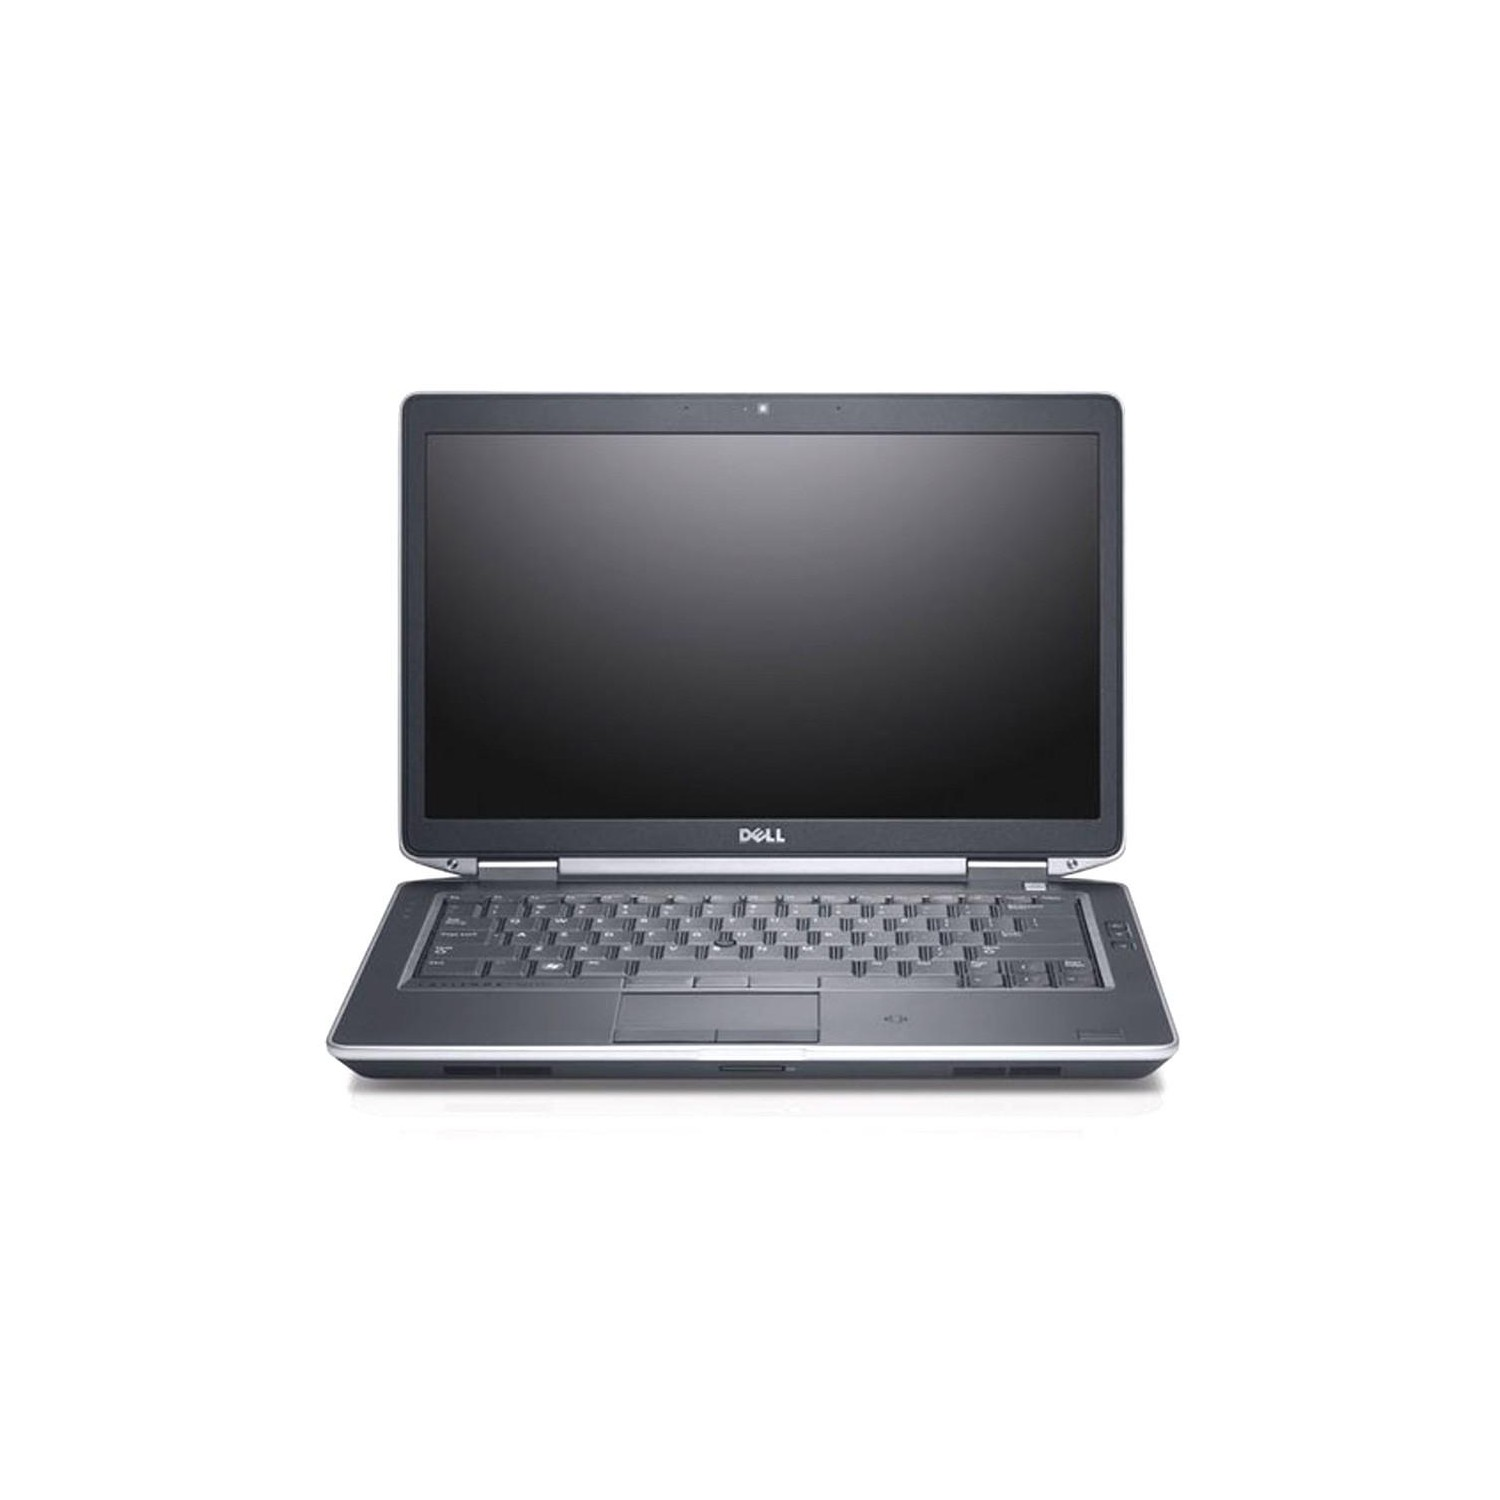 PORTÁTIL DELL LATITUDE E5430 | I5-3340M | 14"